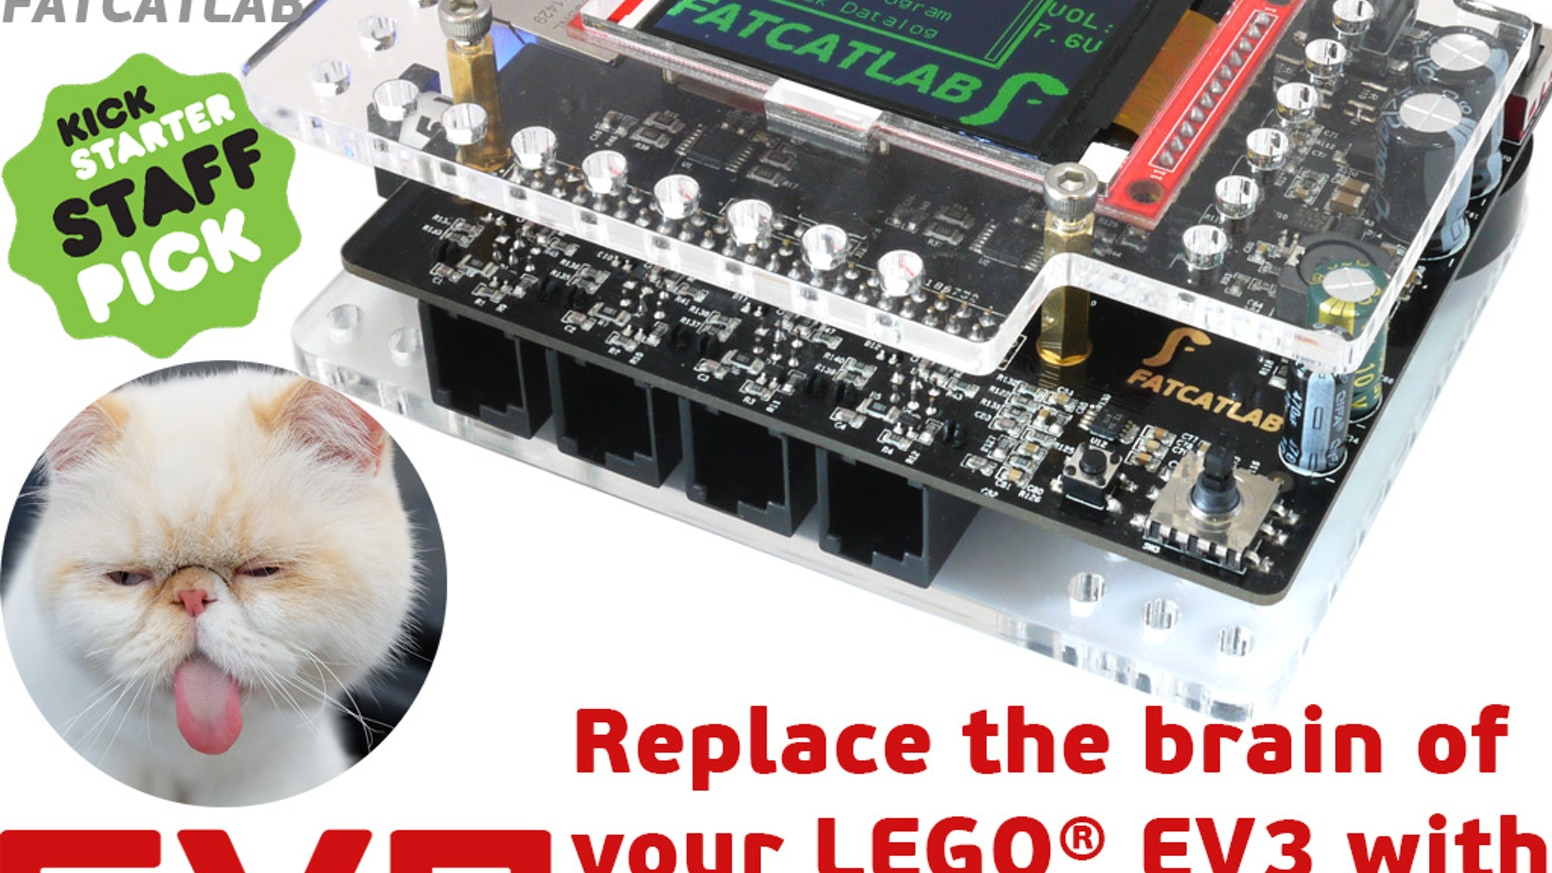 EVB: Replace the brain of your LEGO® EV3 with BeagleBone by